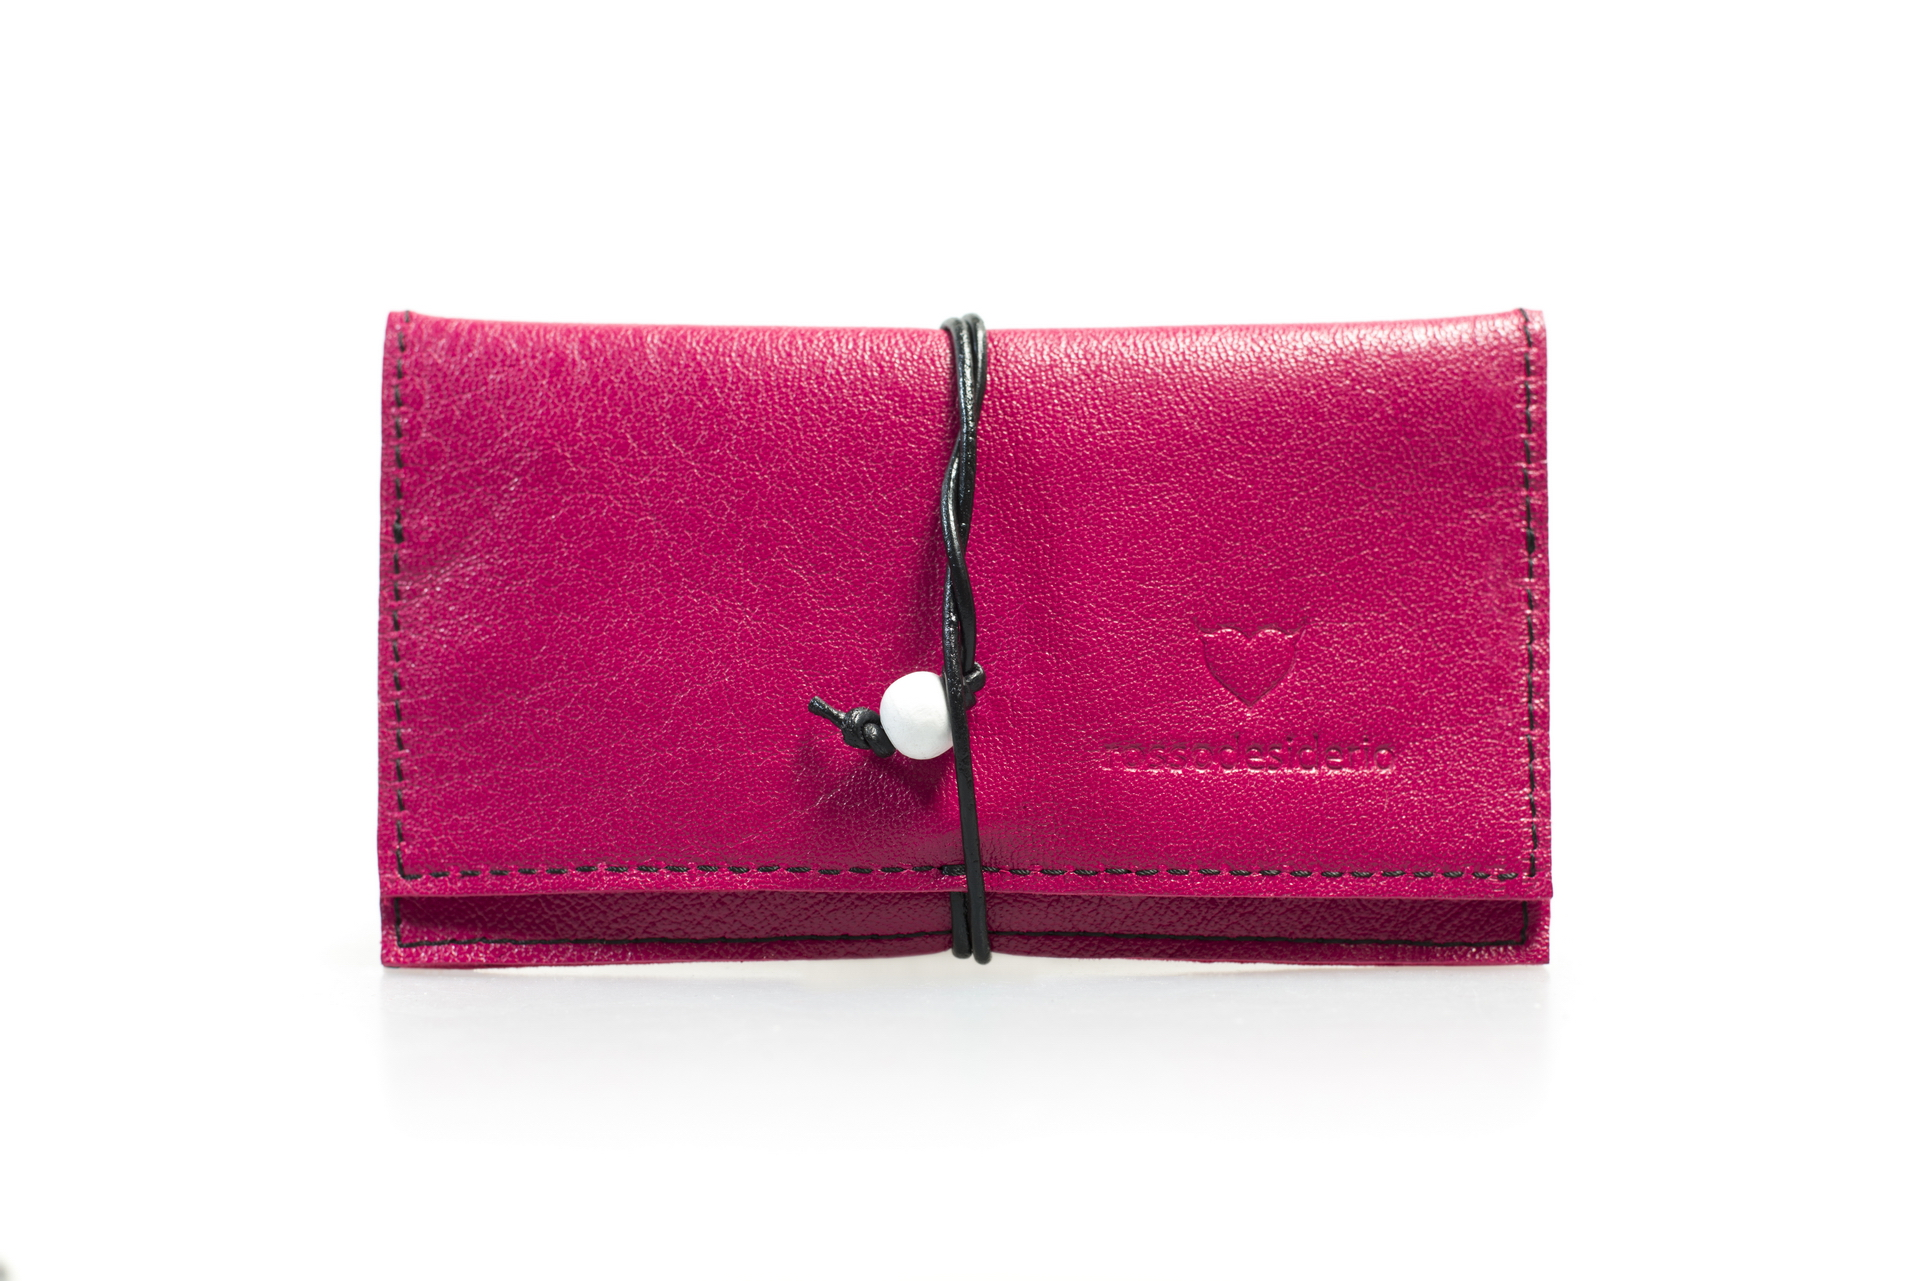 Real leather fuxia tobacco pouch